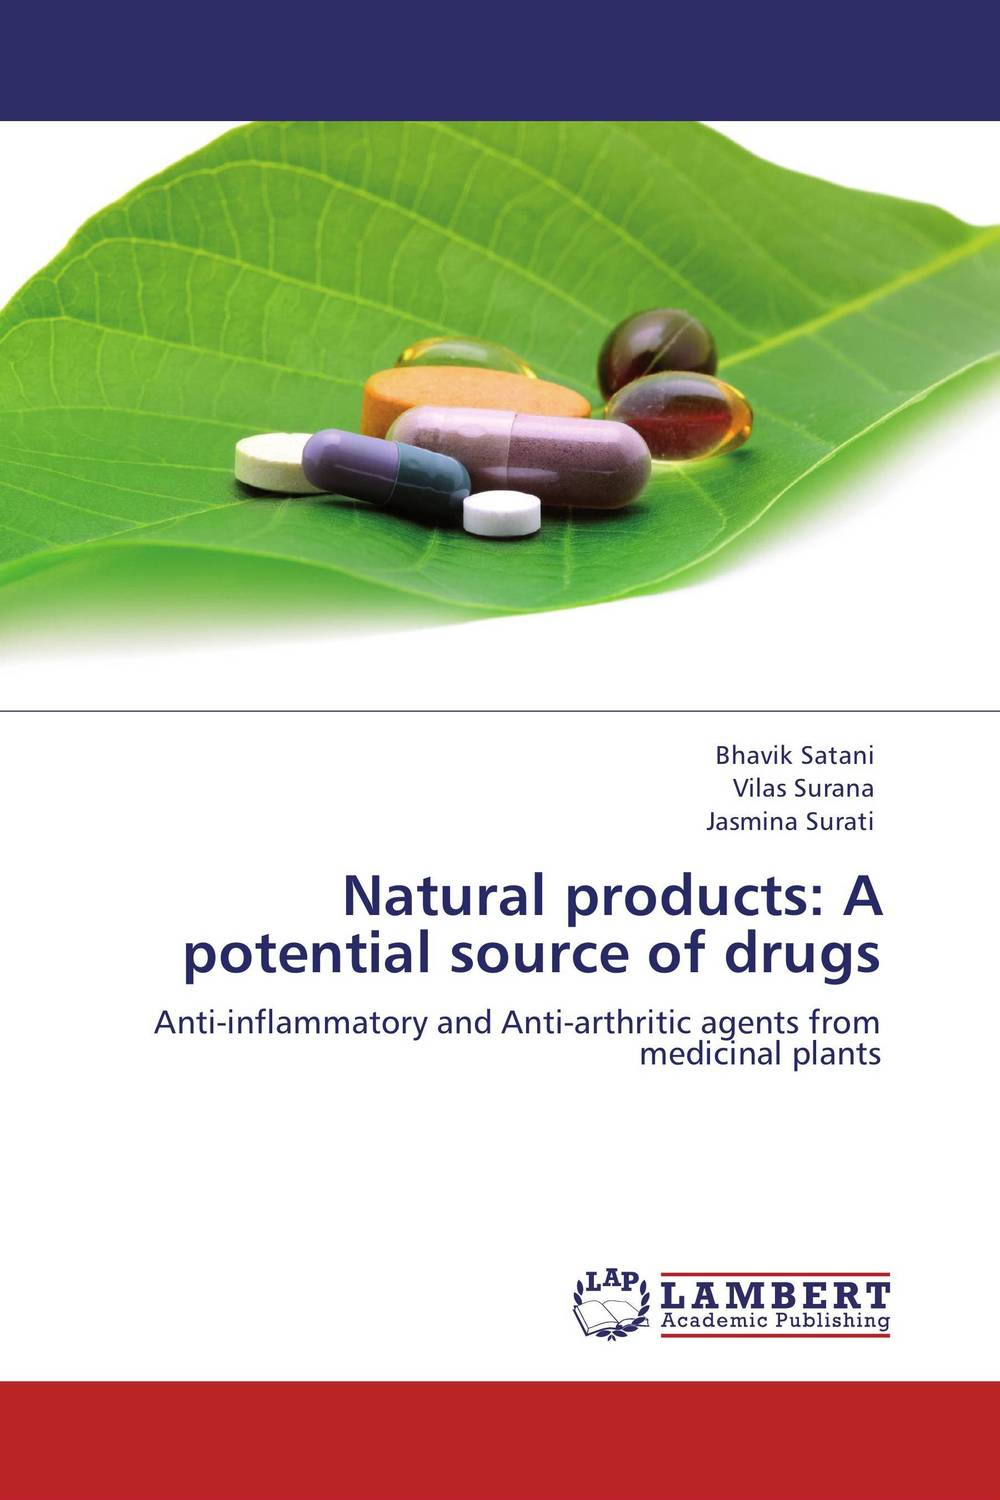 Natural products: A potential source of drugs discovery of natural antioxidants from sudanese medicinal plants